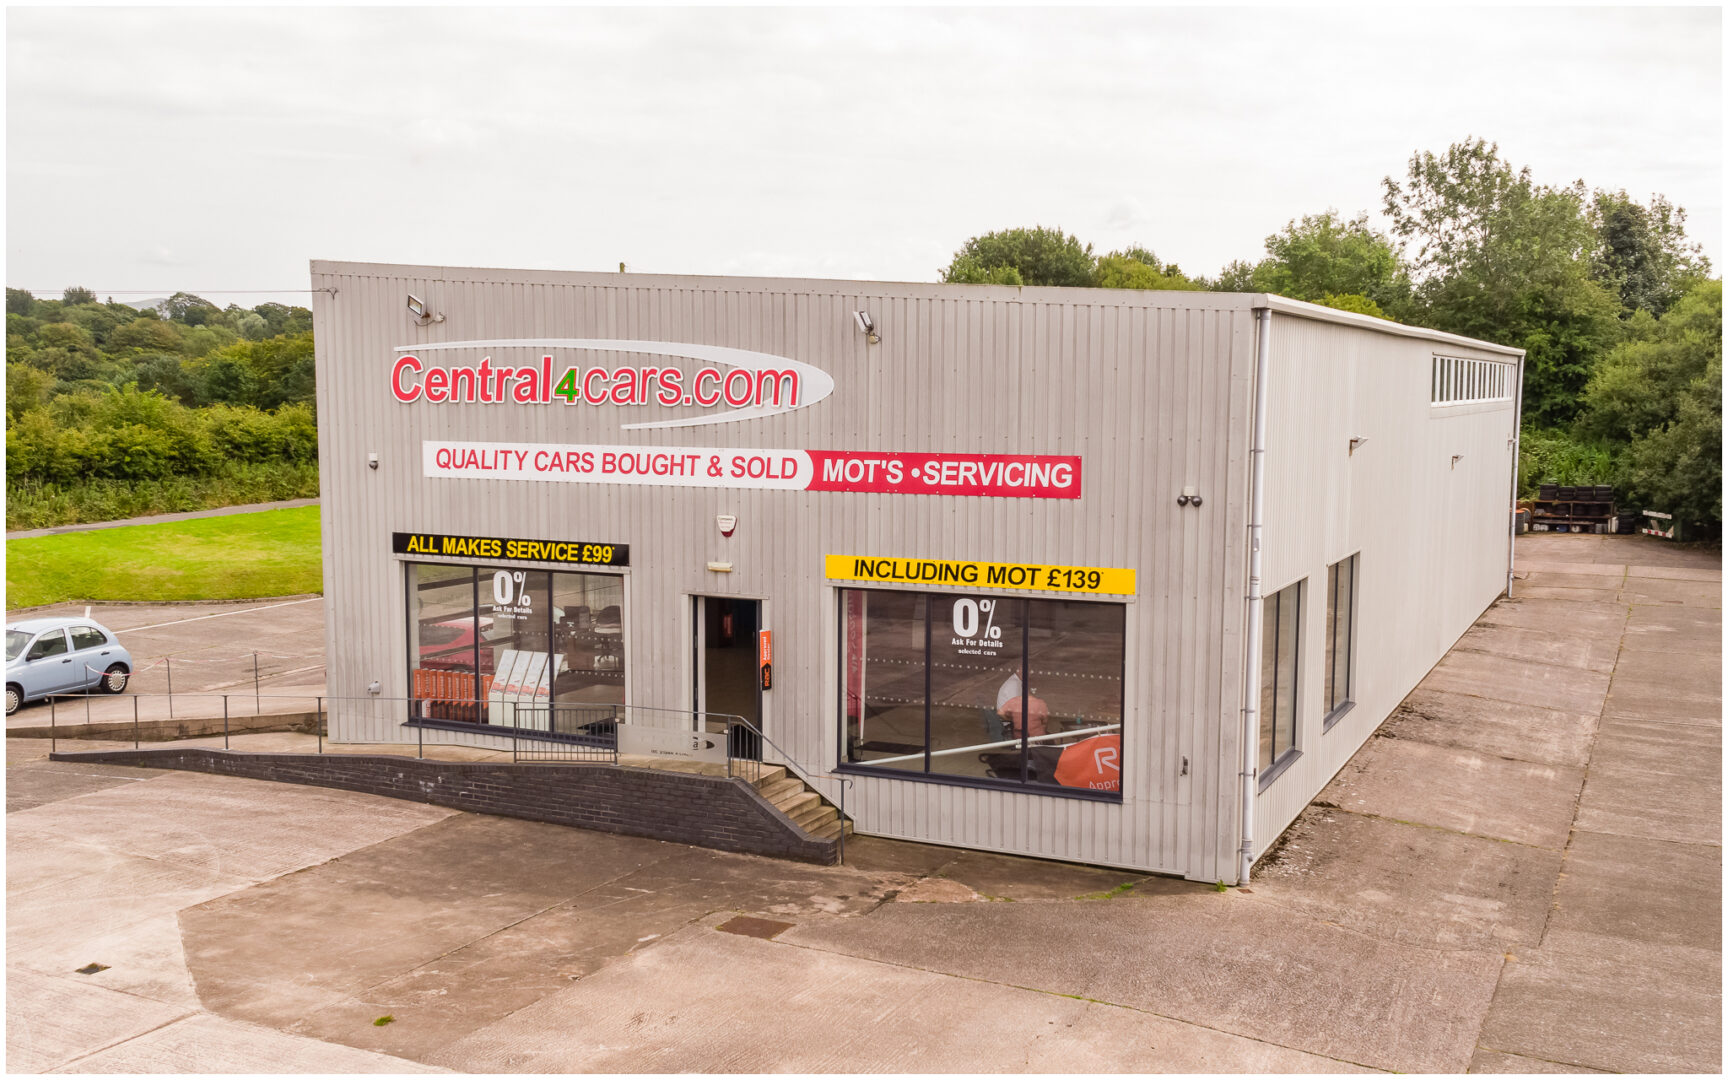 Central, Lillyhall, Workington, Cumbria – SOLD (Subject to Contract)